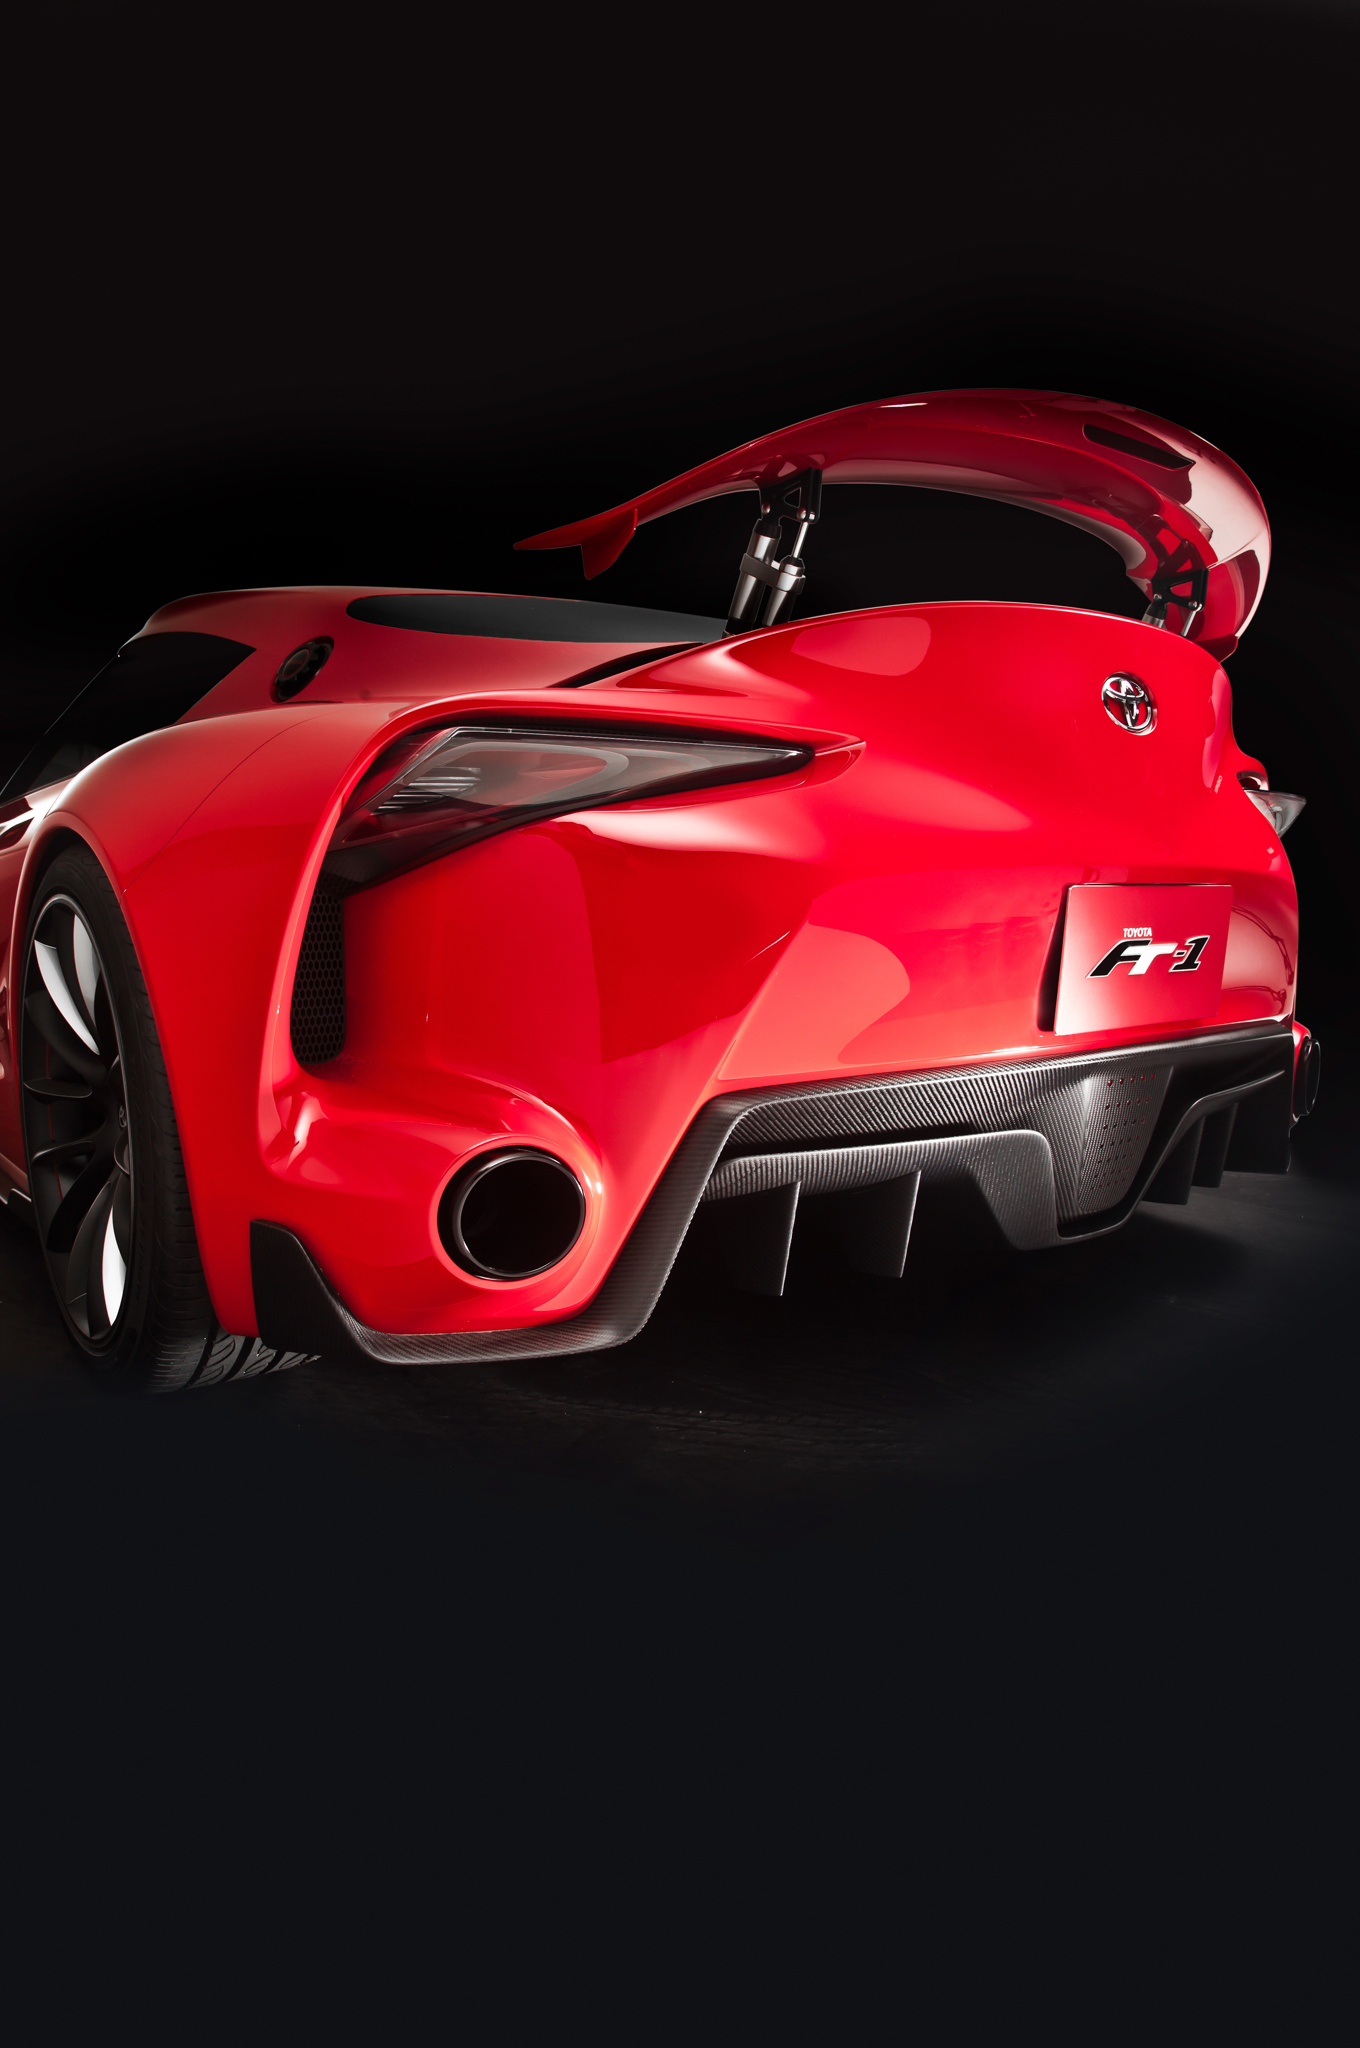 Toyota FT-1 Cool Hi-Res Wallpapers | SupraMKV - 2020 ...